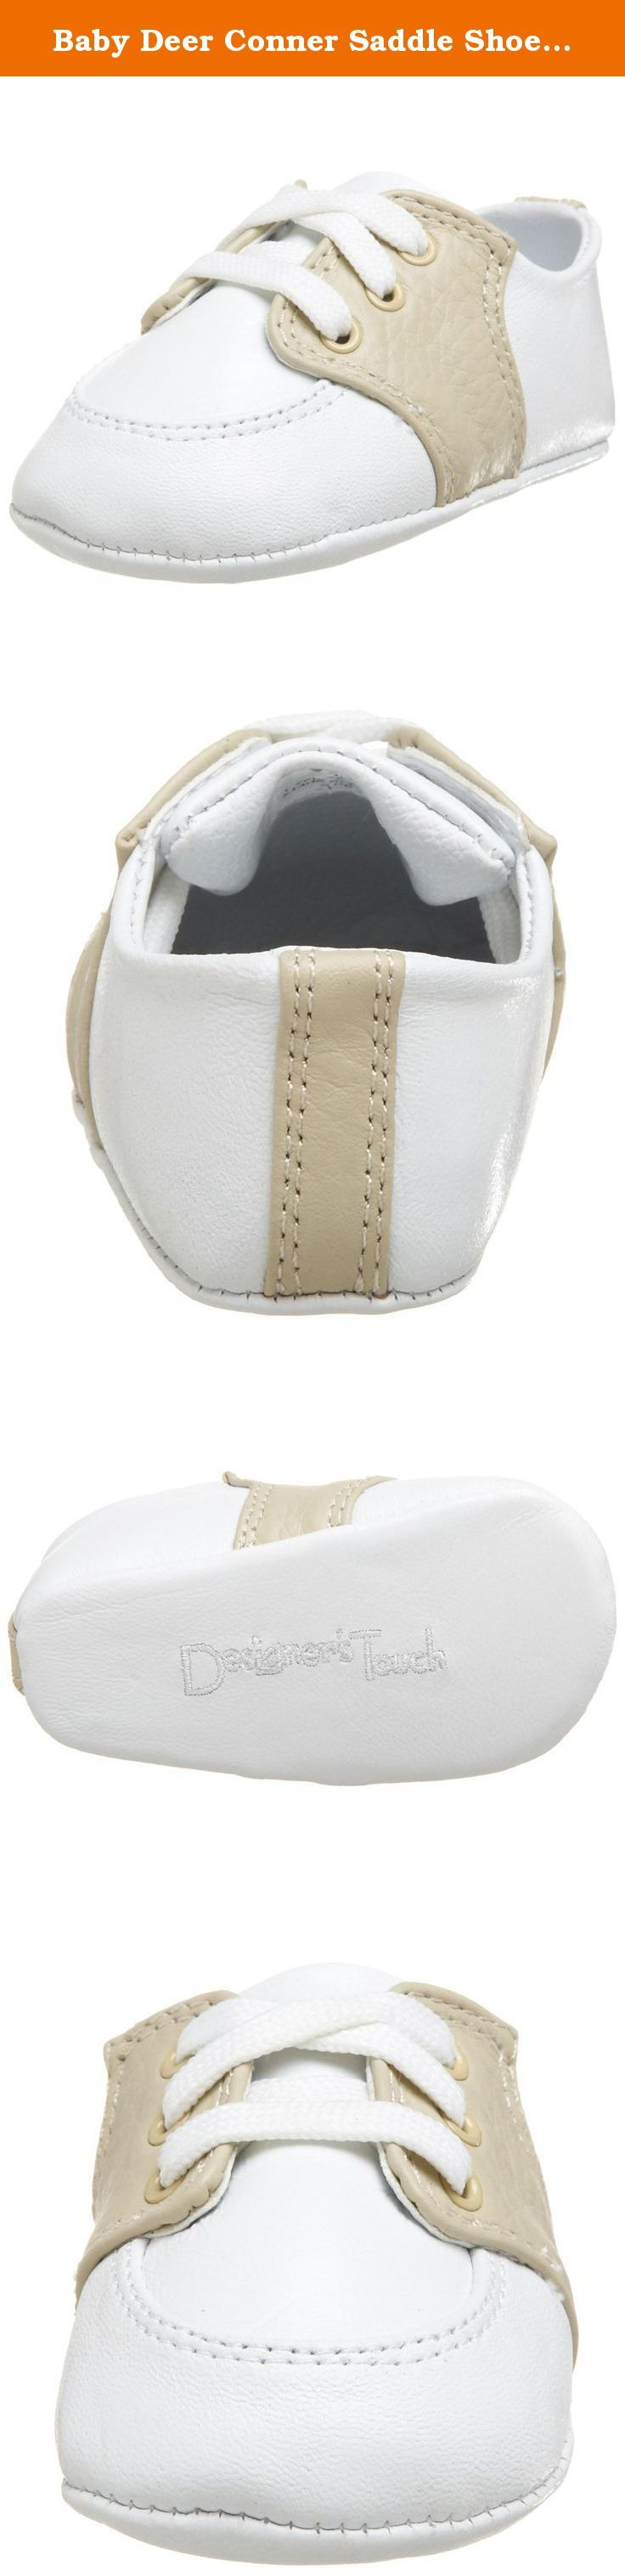 Baby Deer Conner Saddle Shoe (Infant/Toddler),White/Tan,1 M US Infant. Wear these dressed up or down. Classic, yet contemporary two-tone saddle oxford. Pebbled leather upper. Convenient lace-up design. Soft, cushioned outsole keep feet comfortable. Measurements Weight 1 oz Product measurements were taken using size 3 Infant, width M. Please note that measurements may vary by size.